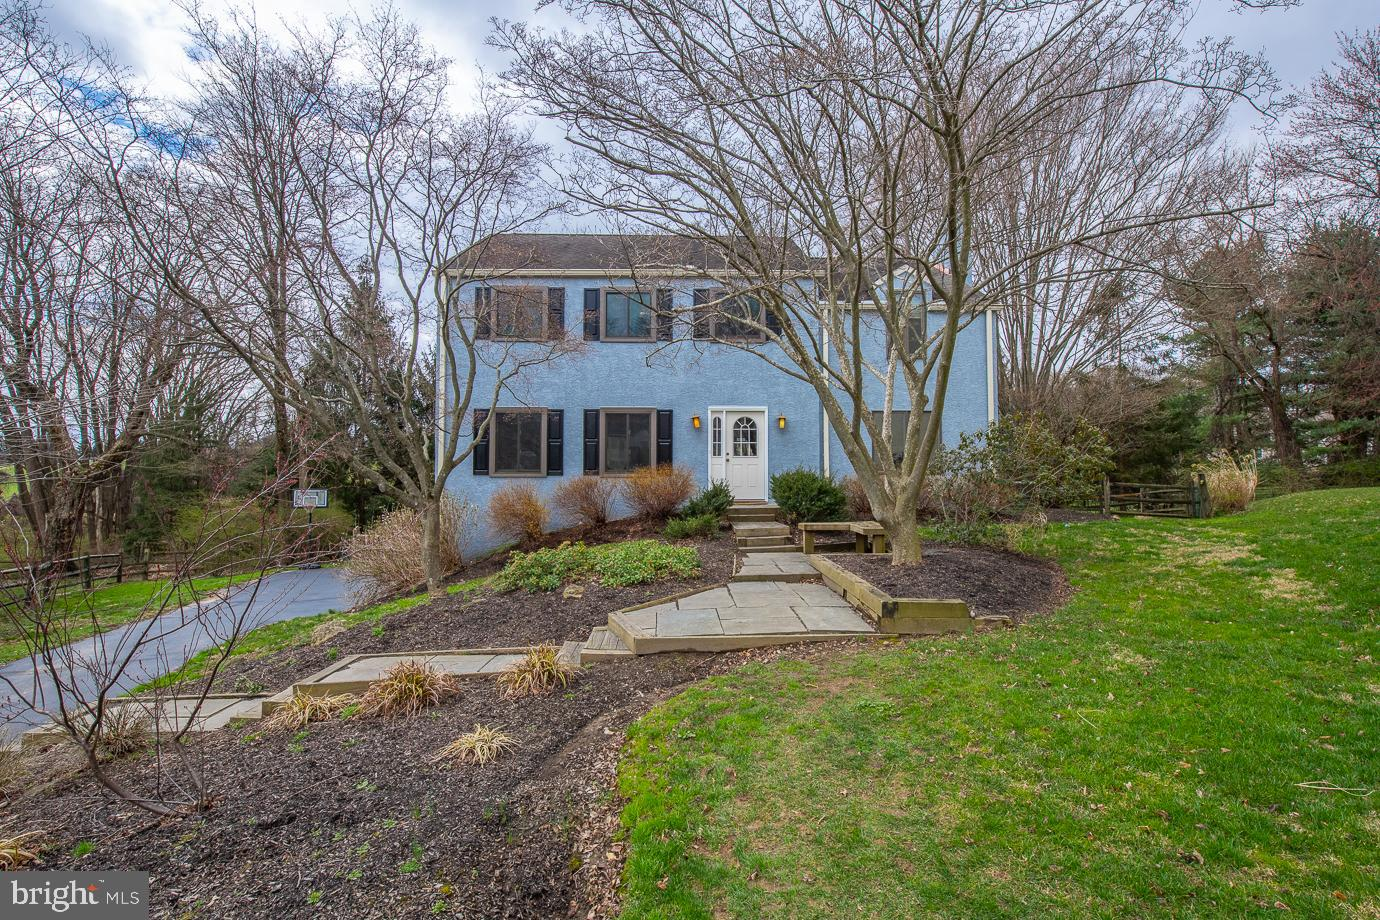 Welcome to 109 Drakes Drum Dr in the desirable Ithan Mills neighborhood of Bryn Mawr.  The sun greets you as you enter this delightful 4 bedroom, 2 full and 1 half bath, 2,784 square foot Colonial home sitting on quiet 0.43 acres.  The formal living room with crown molding and recessed lighting flows into the formal dining room with chair rail and large windows overlooking the grounds.  Conveniently located off the dining room is the large eat-in kitchen with breakfast area and sliders to back deck.  The kitchen opens to the charming family room with built-ins and brick, wood burning fire fireplace.  Also on this floor are a half bath and laundry room.   The second floor features primary bedroom with 2 large closets, window seat and ensuite bathroom.  Three additional bedrooms with full hall bath complete this level.  The walk-out lower level offers storage and additional living space perfect for playroom or gym and has sliders to patio and level fenced in yard.  Hardwood floors  and new windows throughout the home.  Two car garage.  Walk to Ithan Elementary.  Close to public transportation, 476 and the shops and restaurants of both Wayne and Bryn Mawr.  Schedule your showing today!